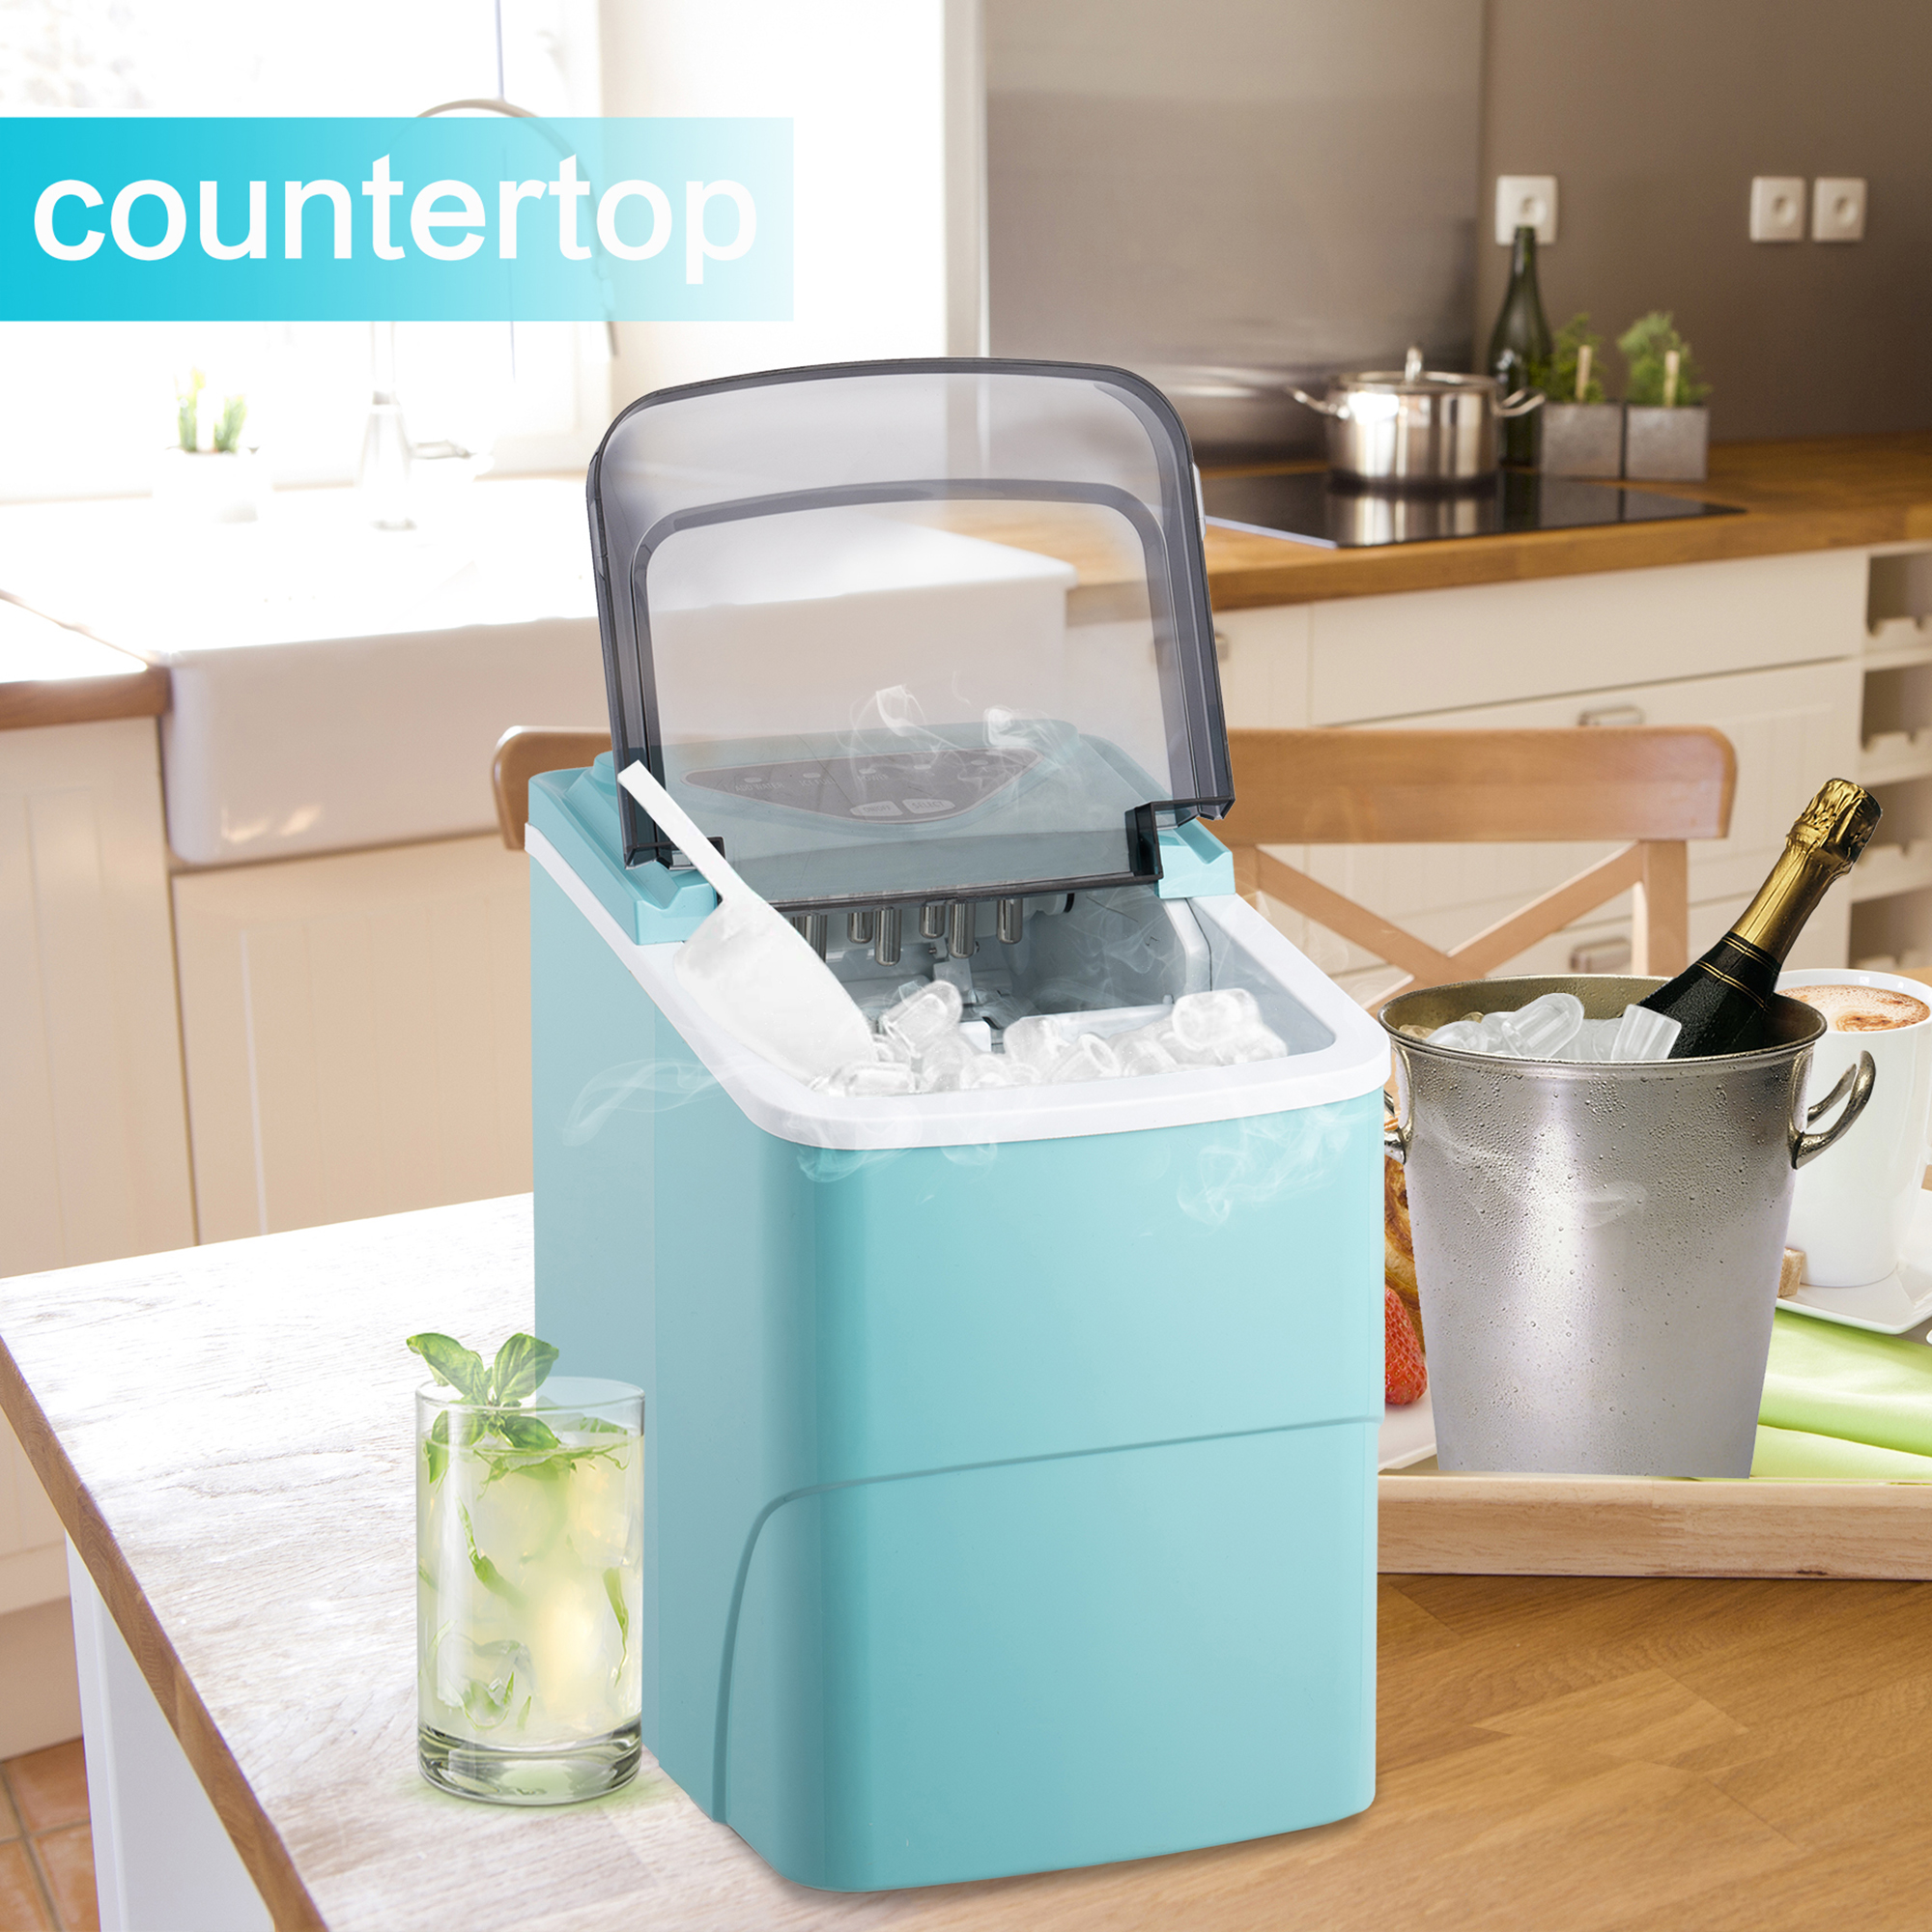 [US Direct] Countertop Ice Maker Machine, Portable Compact Automatic Ice Maker with Scoop and Basket, Perfect for Home/Kitchen/Office/Bar Mixed Drinks